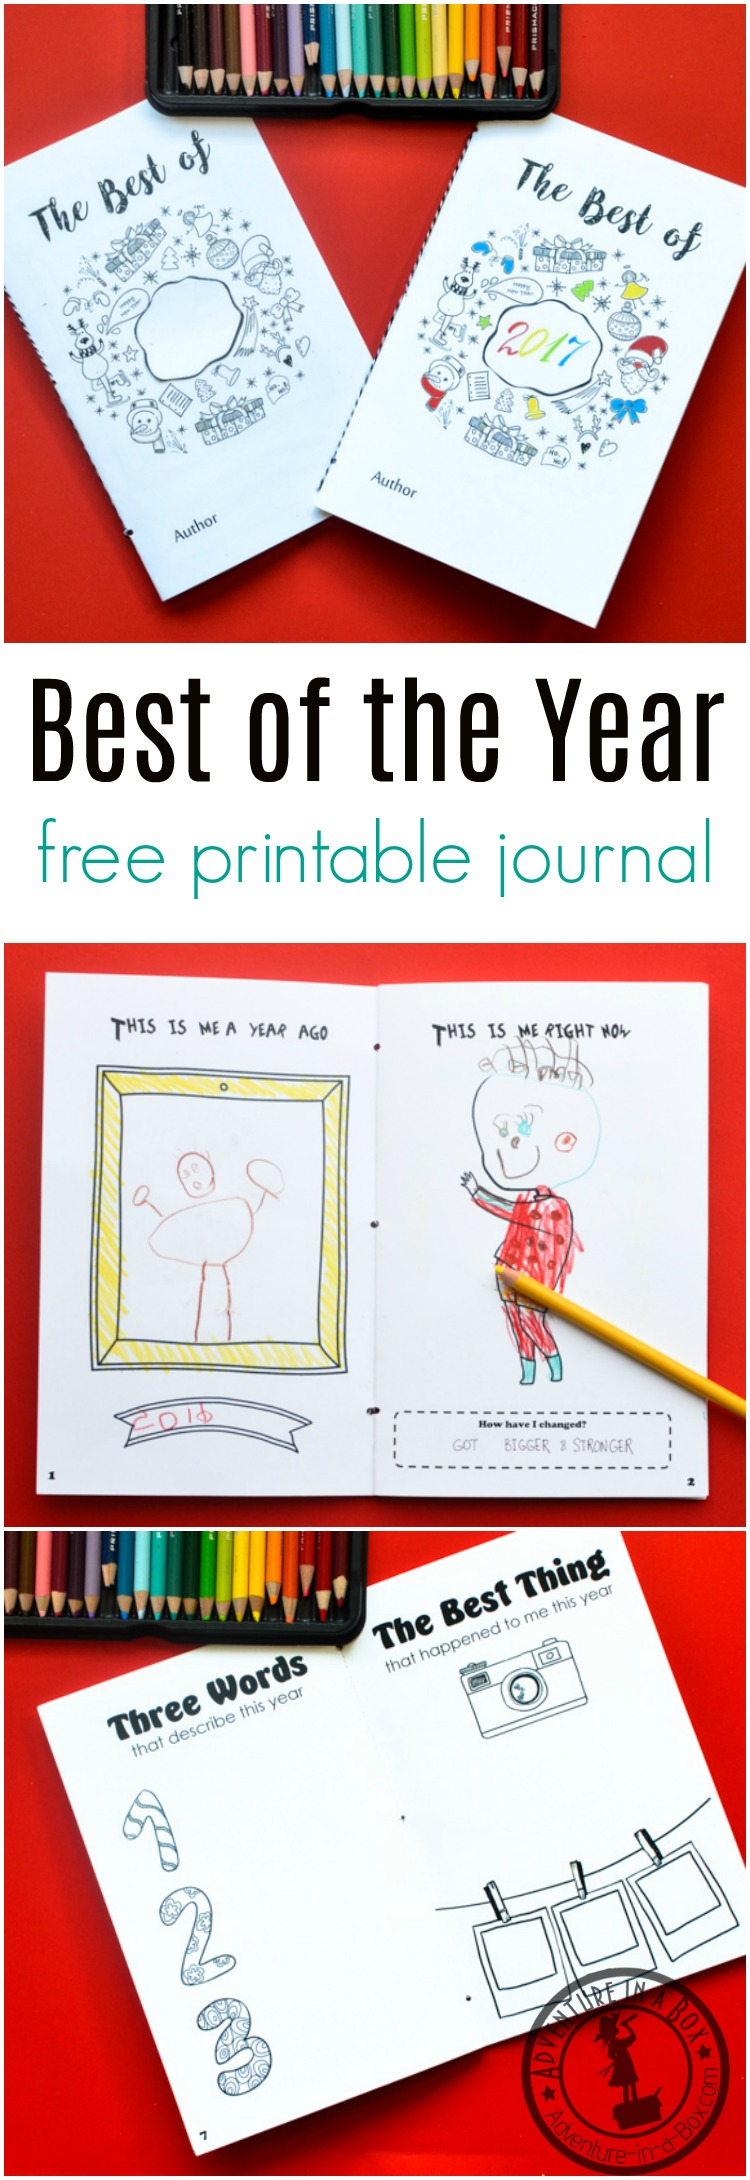 Best of the Year: Free Printable Journal for Kids to Fill on New Year's Eve | Adventure in a Box